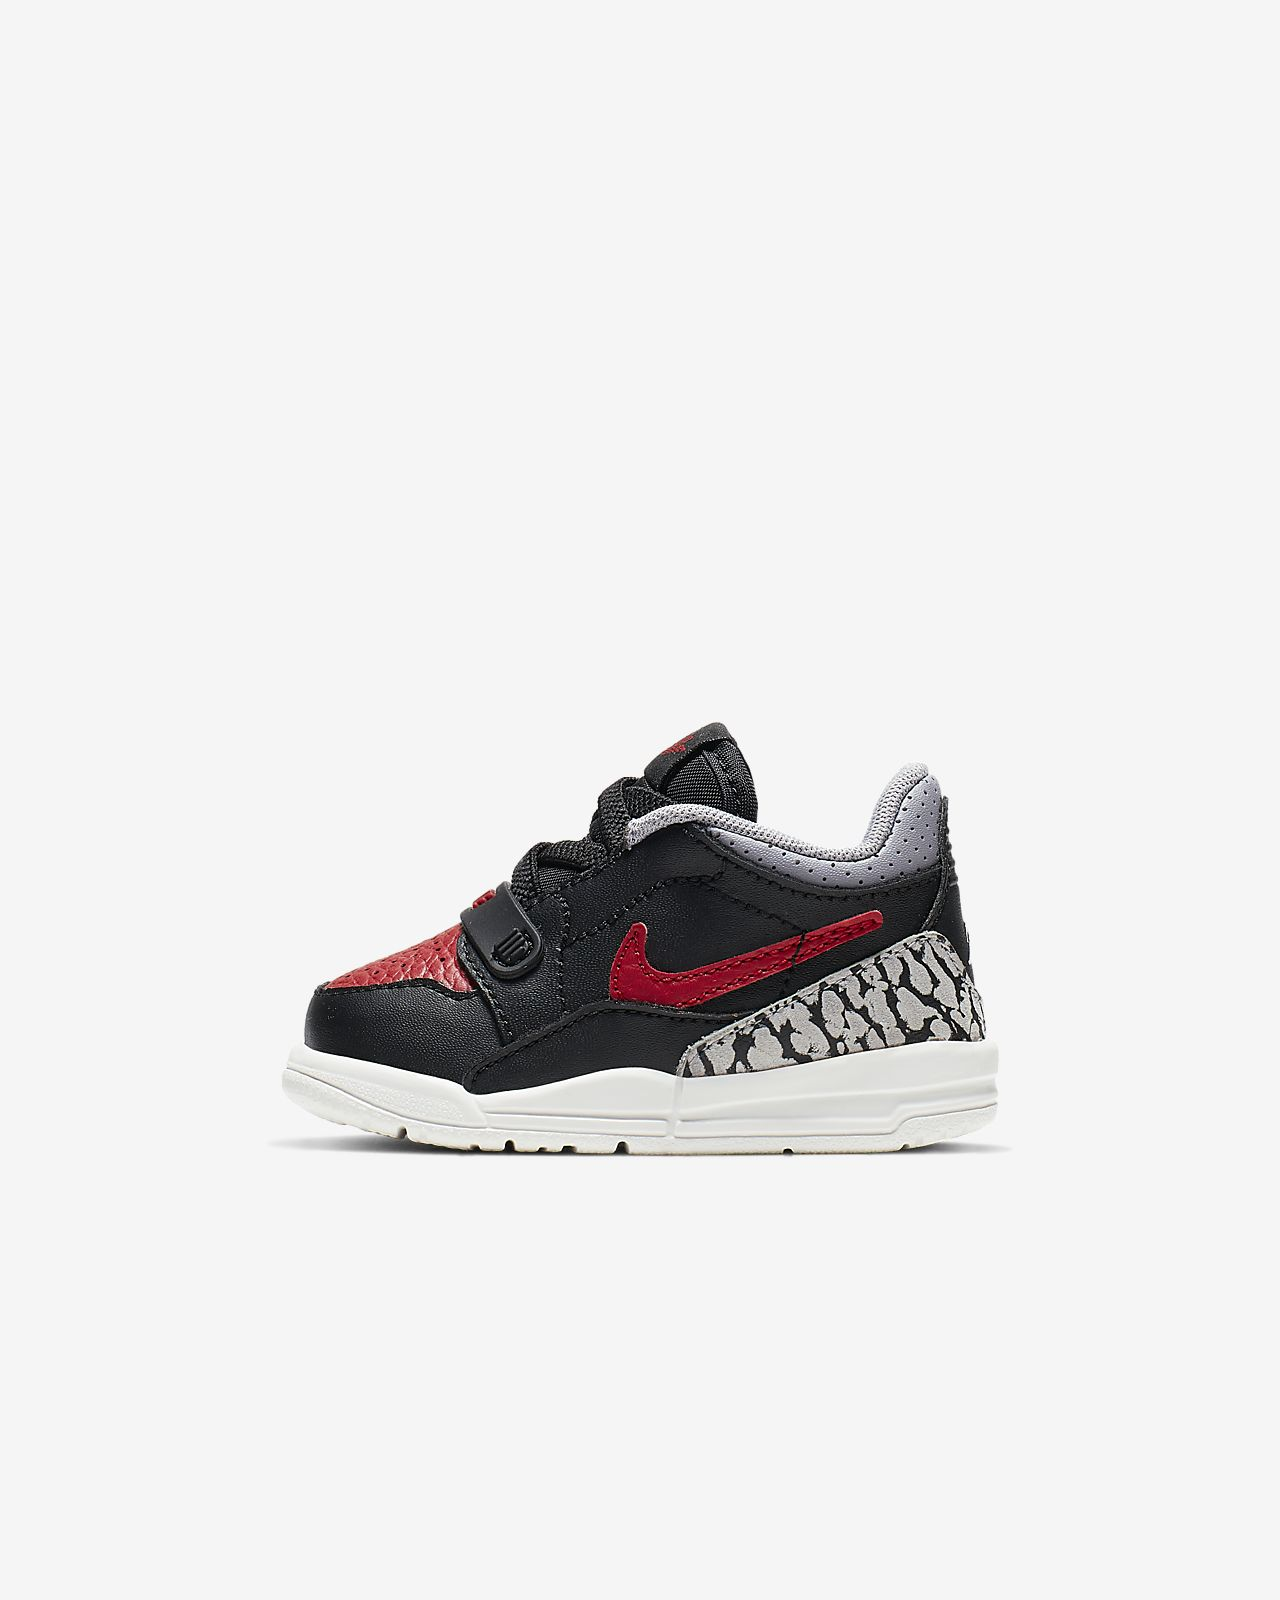 official photos 5c7de f5990 Baby and Toddler Shoe. Air Jordan Legacy 312 Low